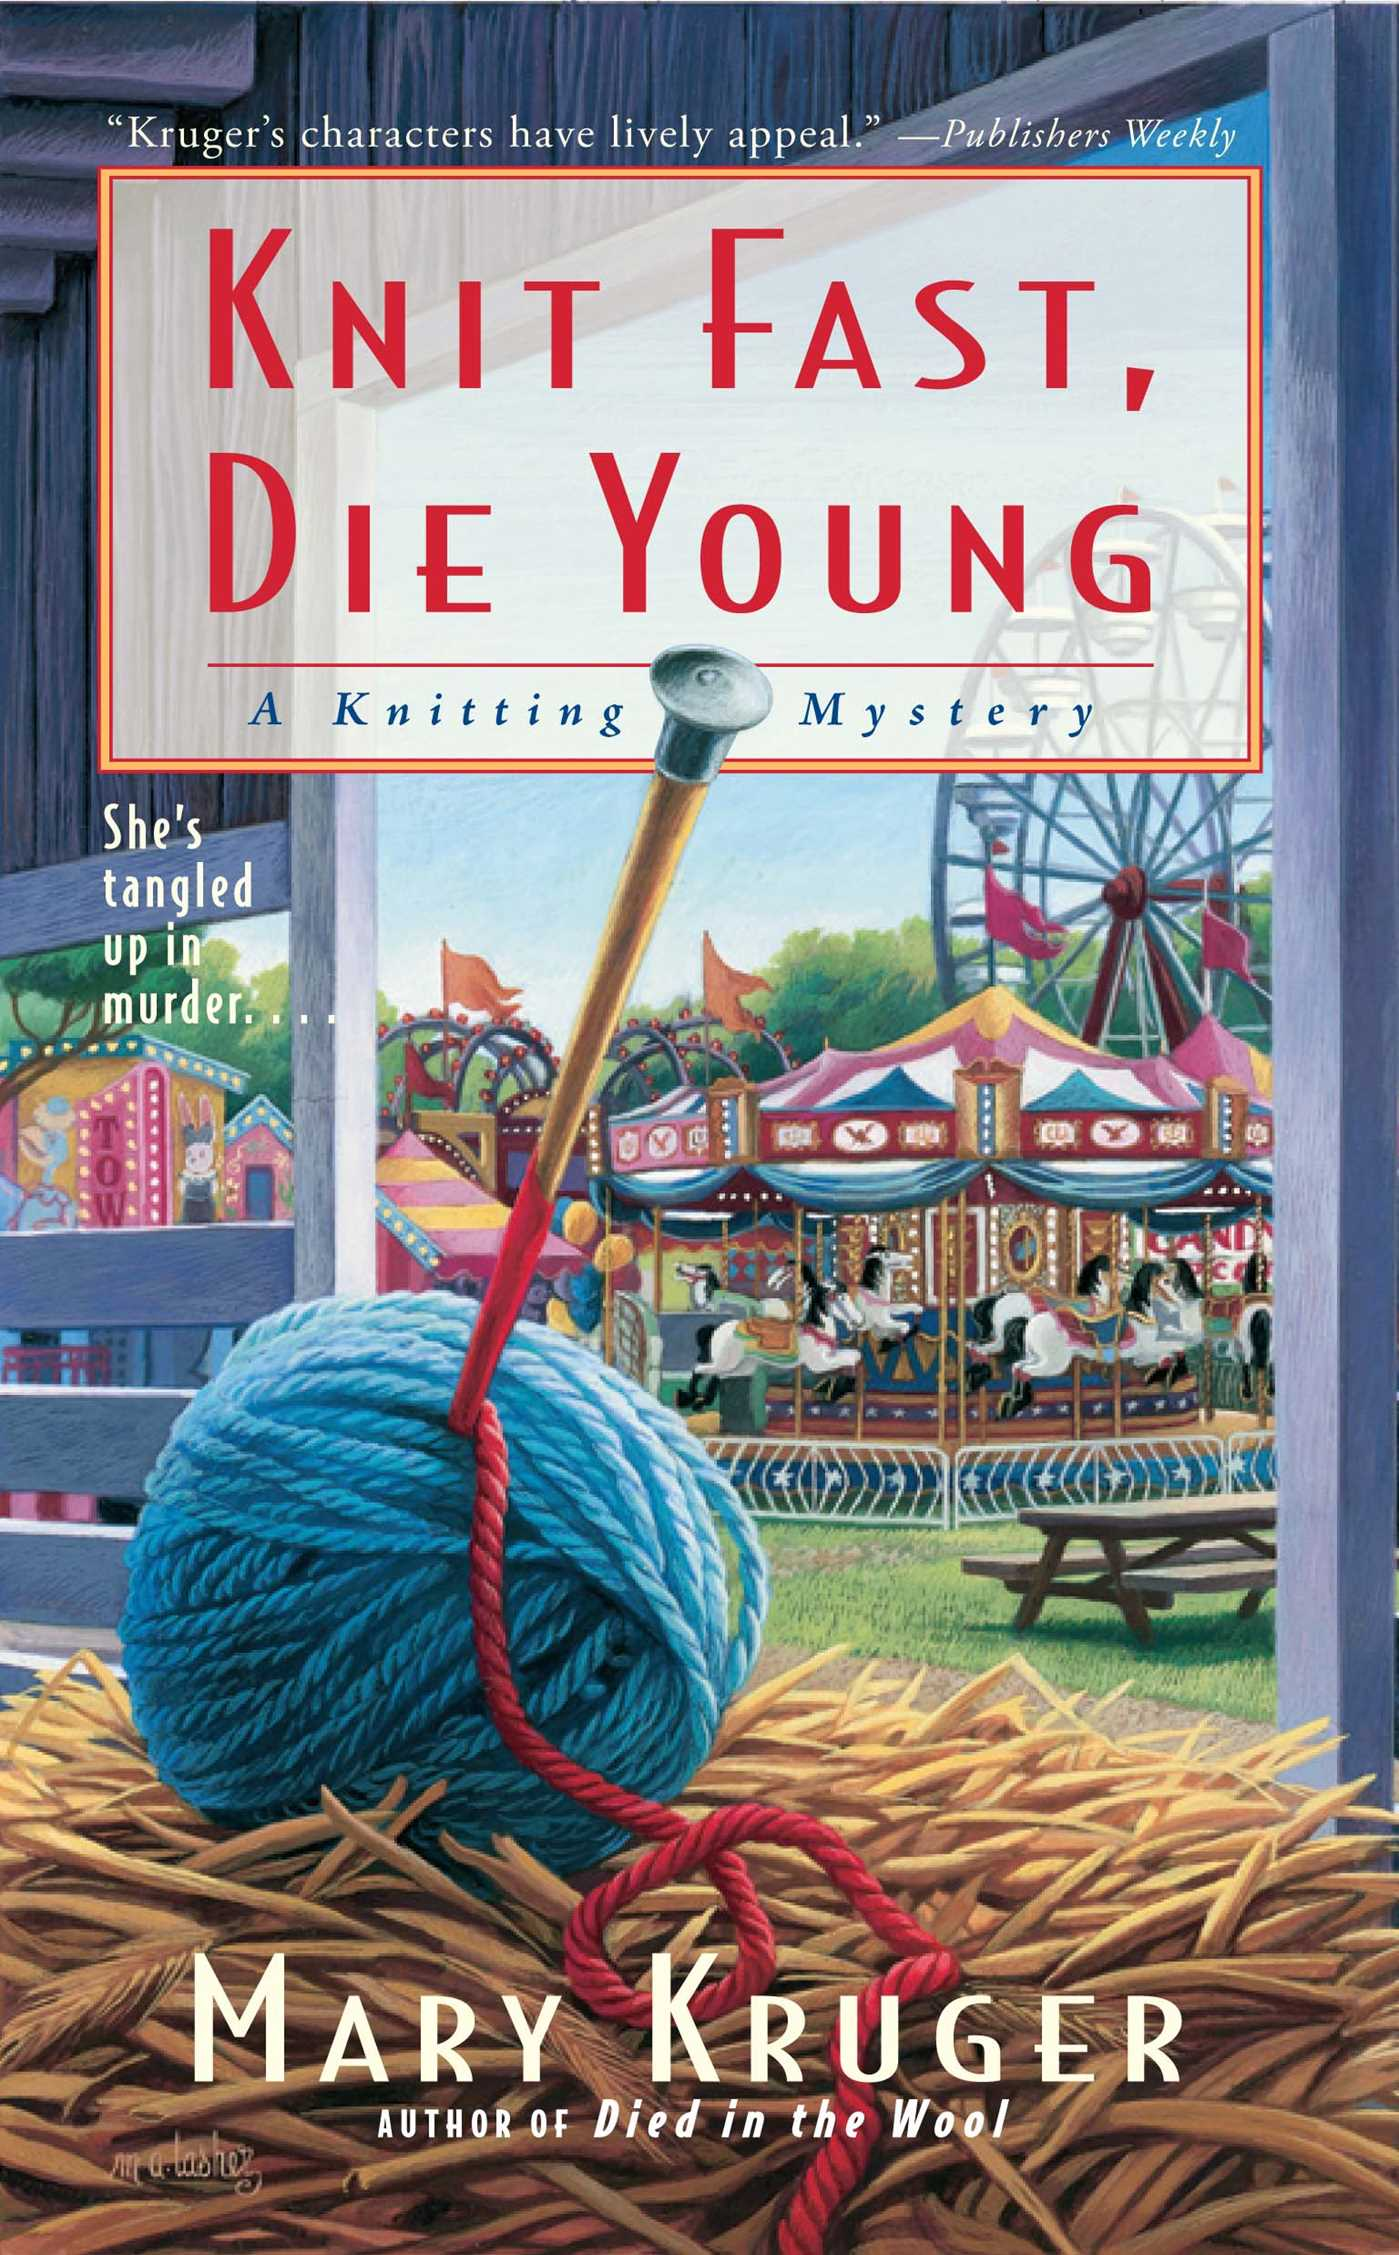 Knit fast die young 9781416556510 hr